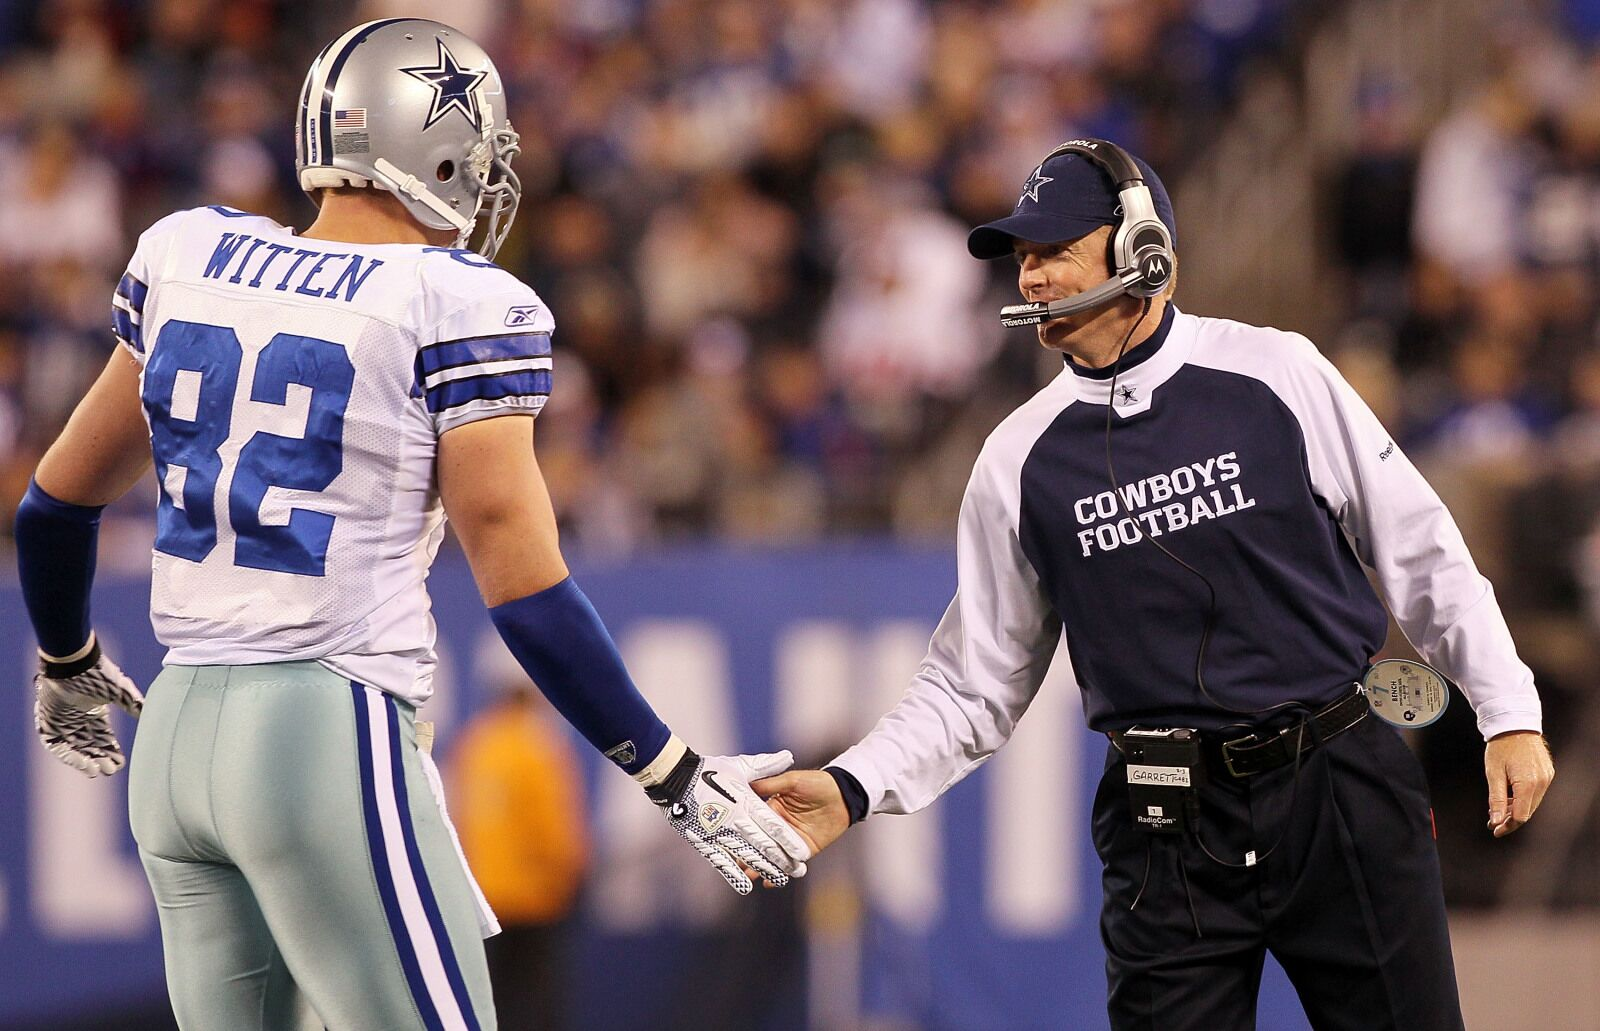 Dallas Cowboys fans shouldn't despise Jason Garrett or Jason Witten